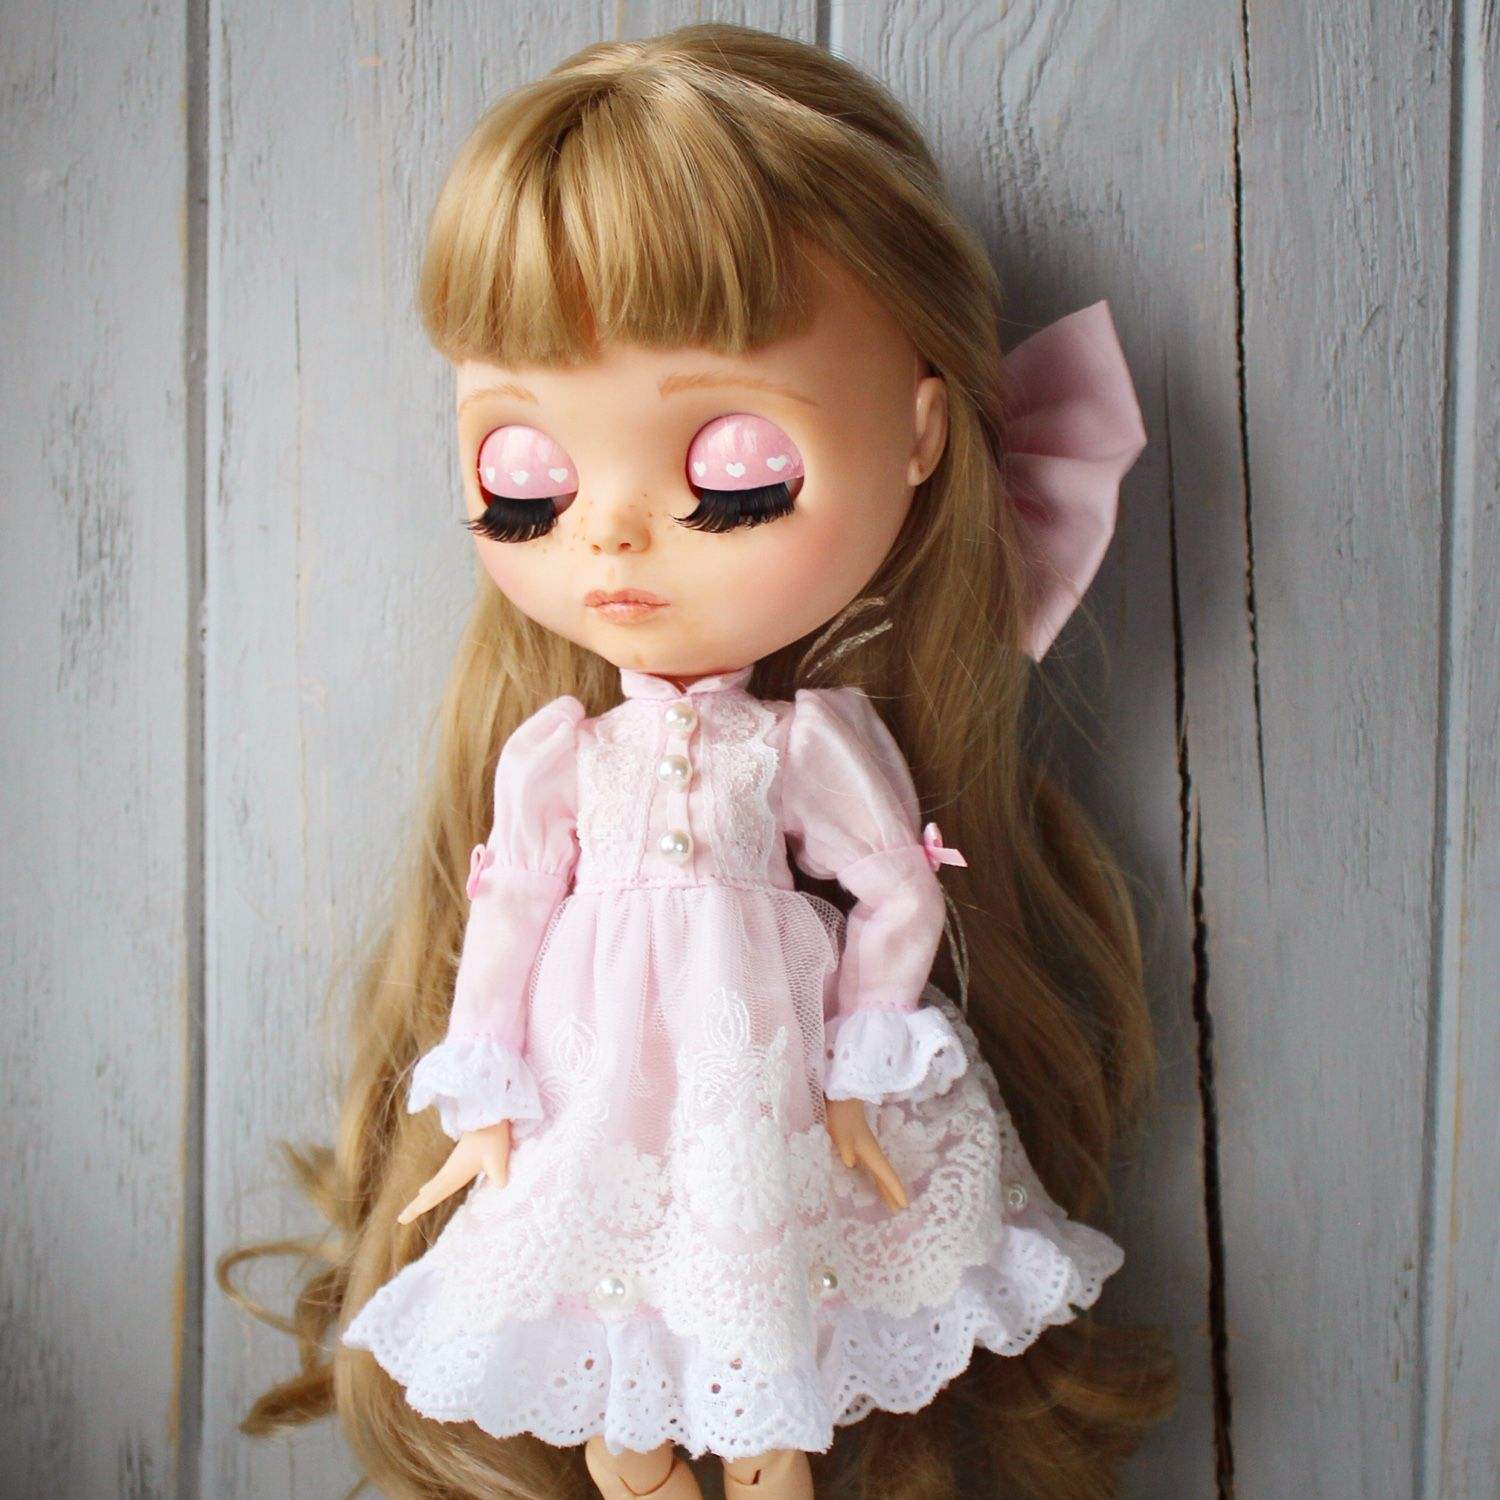 blythe christian personals Haley blythe  @haleyblythe3 15  jon christian 🕵  verified  i'm dating my favorite person in the entire world 404 replies 89,126 retweets 136,115 likes reply retweet retweeted like liked show this thread show this thread thanks twitter will use this to make your timeline better.